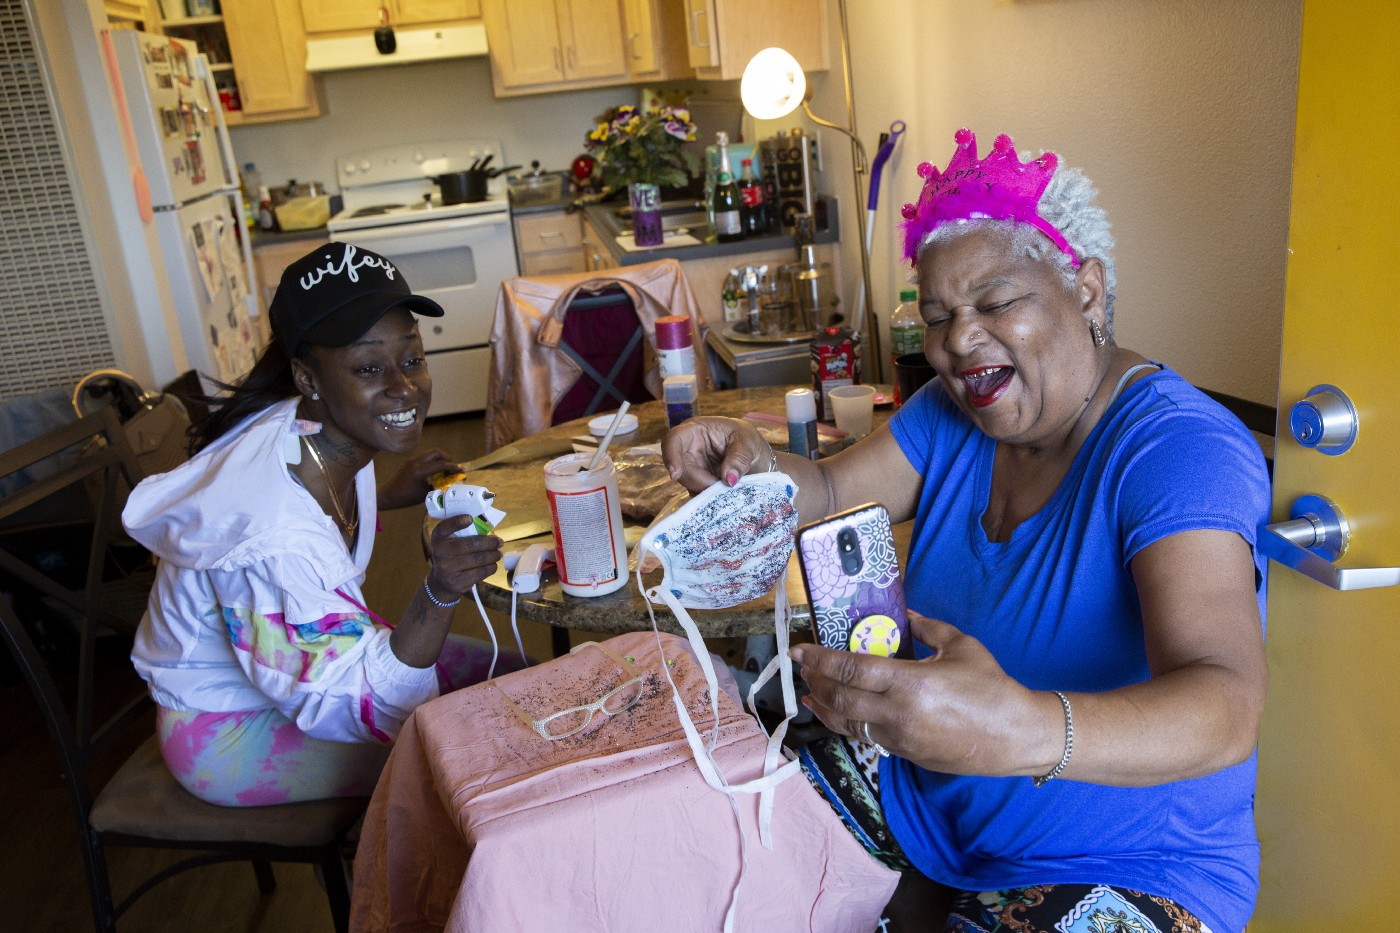 Curtisha Bell and her aunt Vicky Blake show progress of their festive surgical masks to friends and family on video chat.